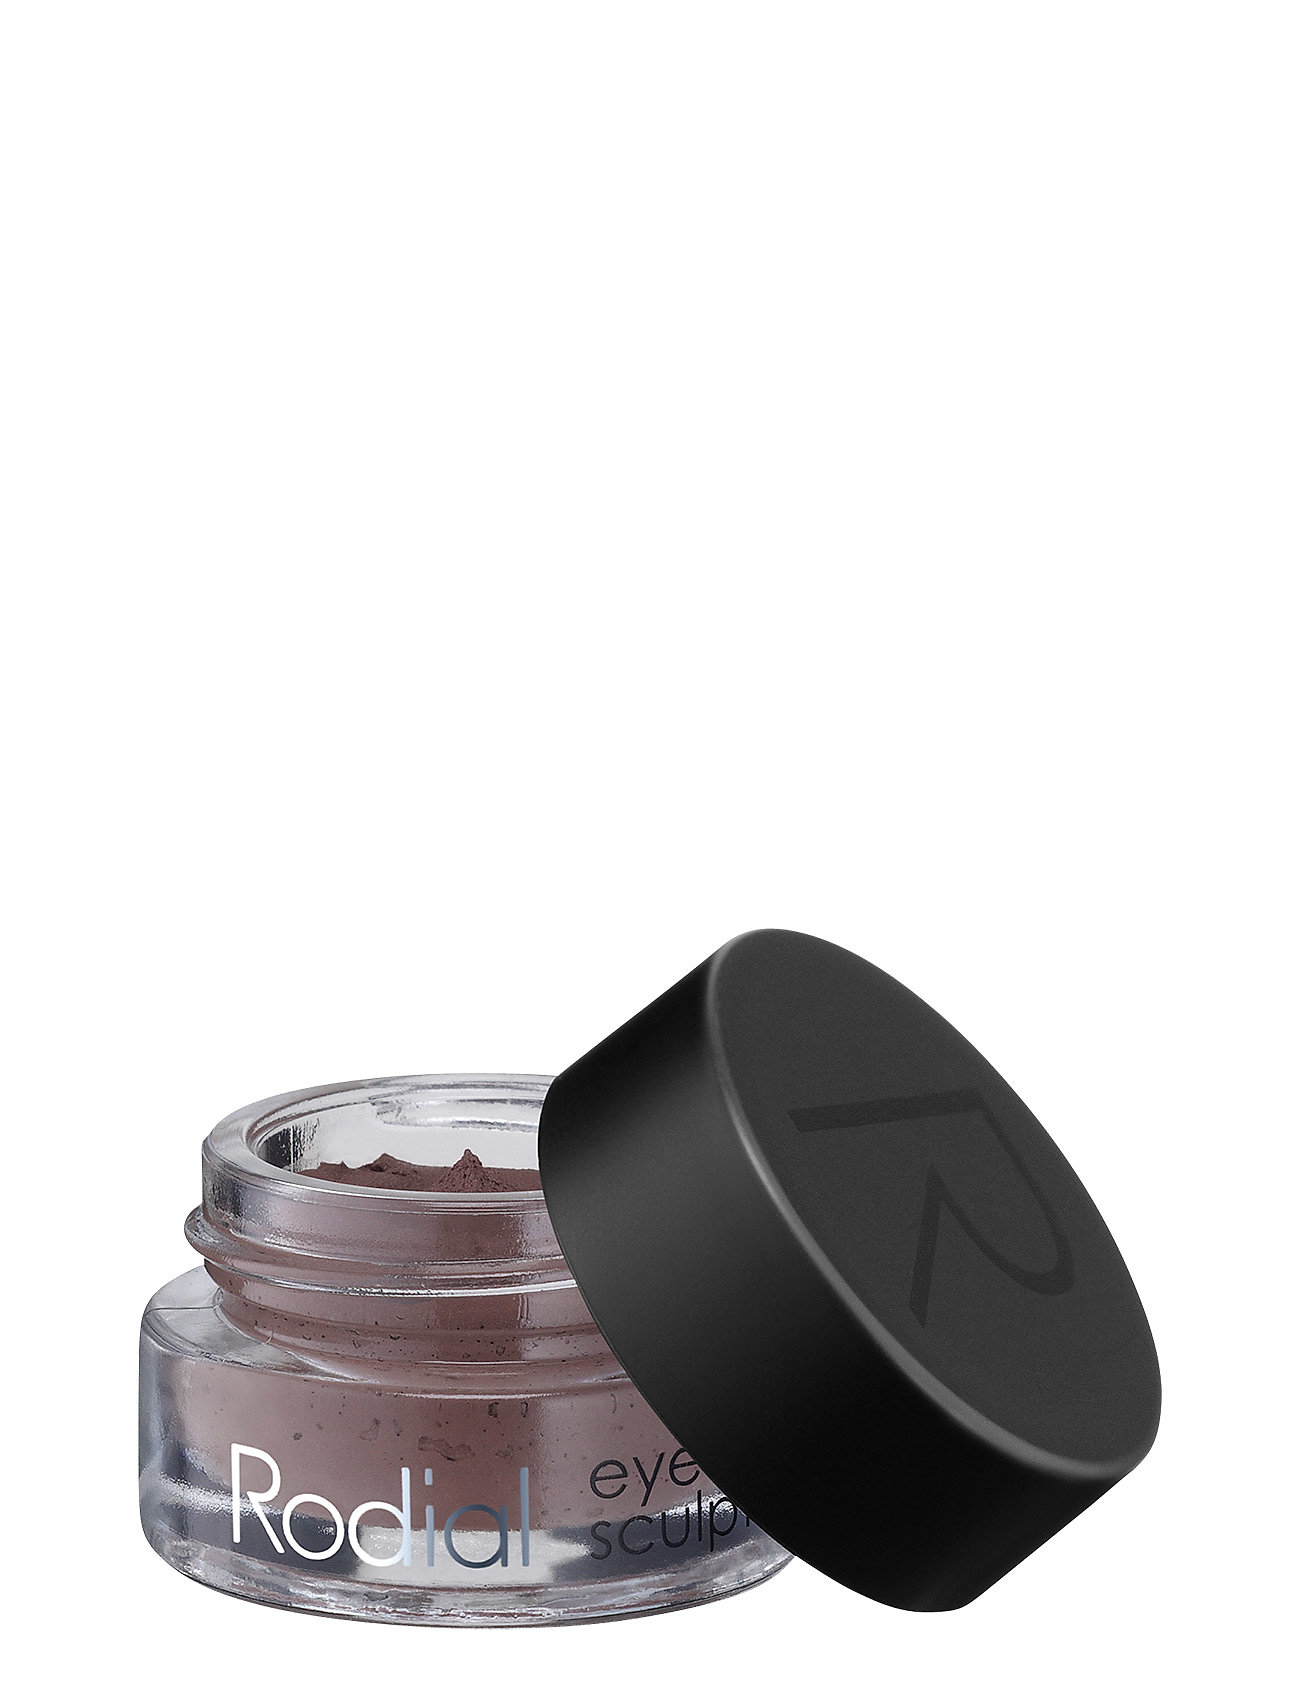 Rodial Eye Sculpt - CLEAR